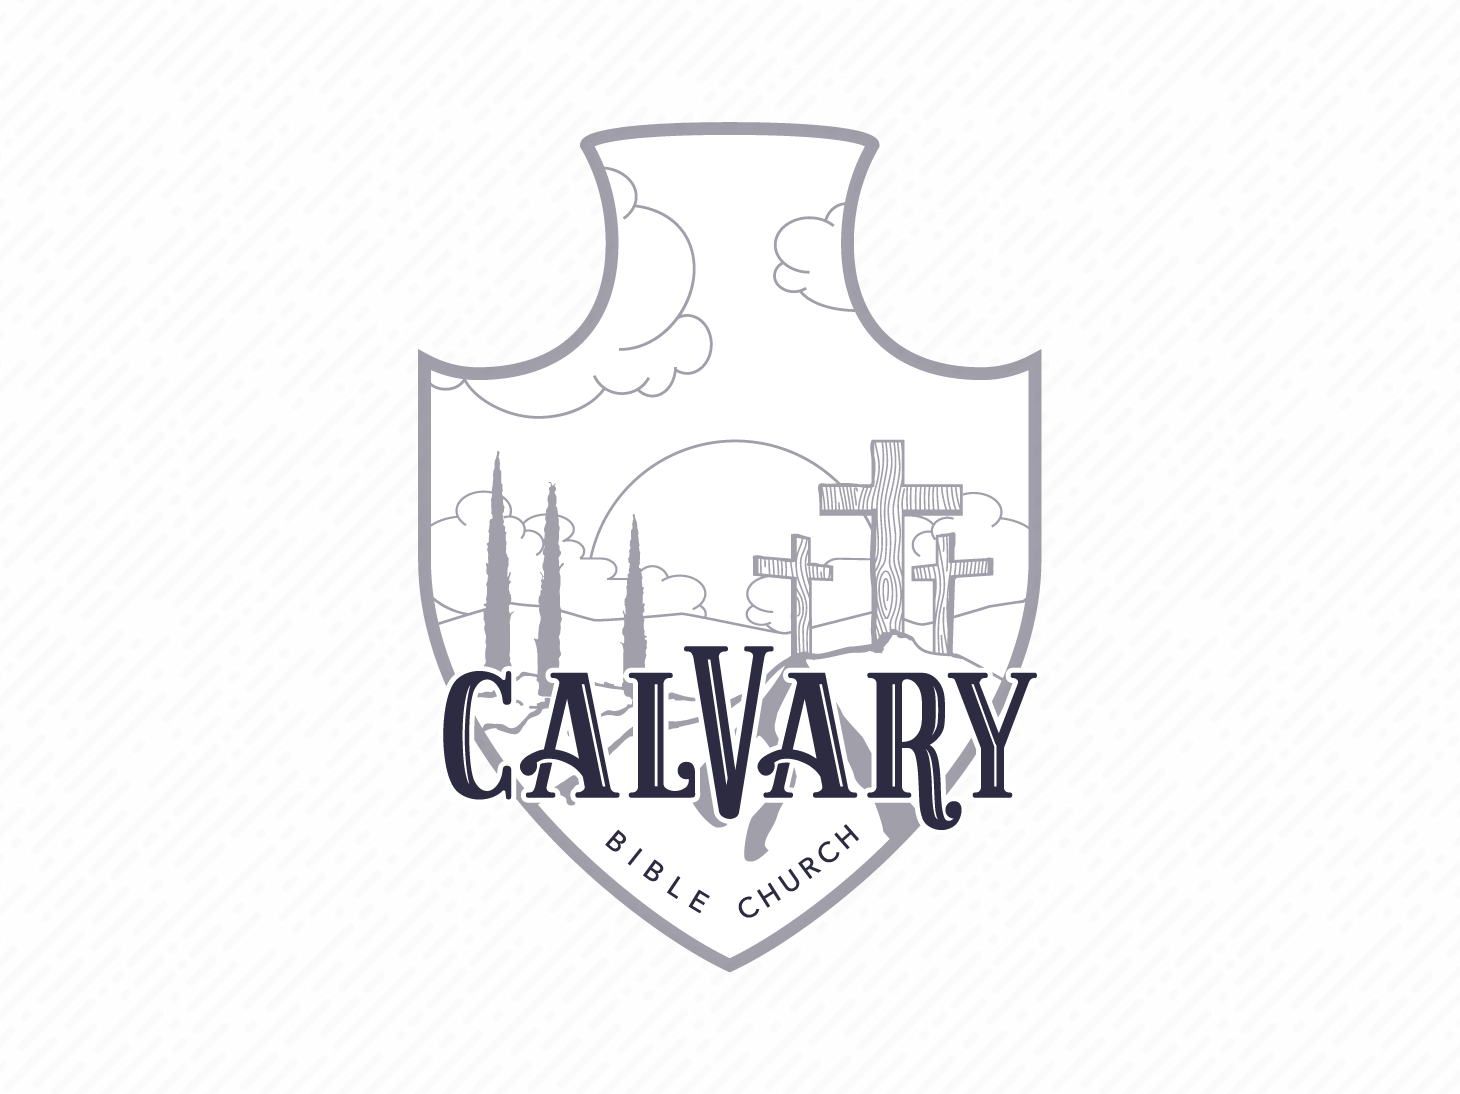 Calvary Bible Church – Badge white black brand typography branding monochrome greyscale illustration design vector badge logo badge logo illustrator church branding church